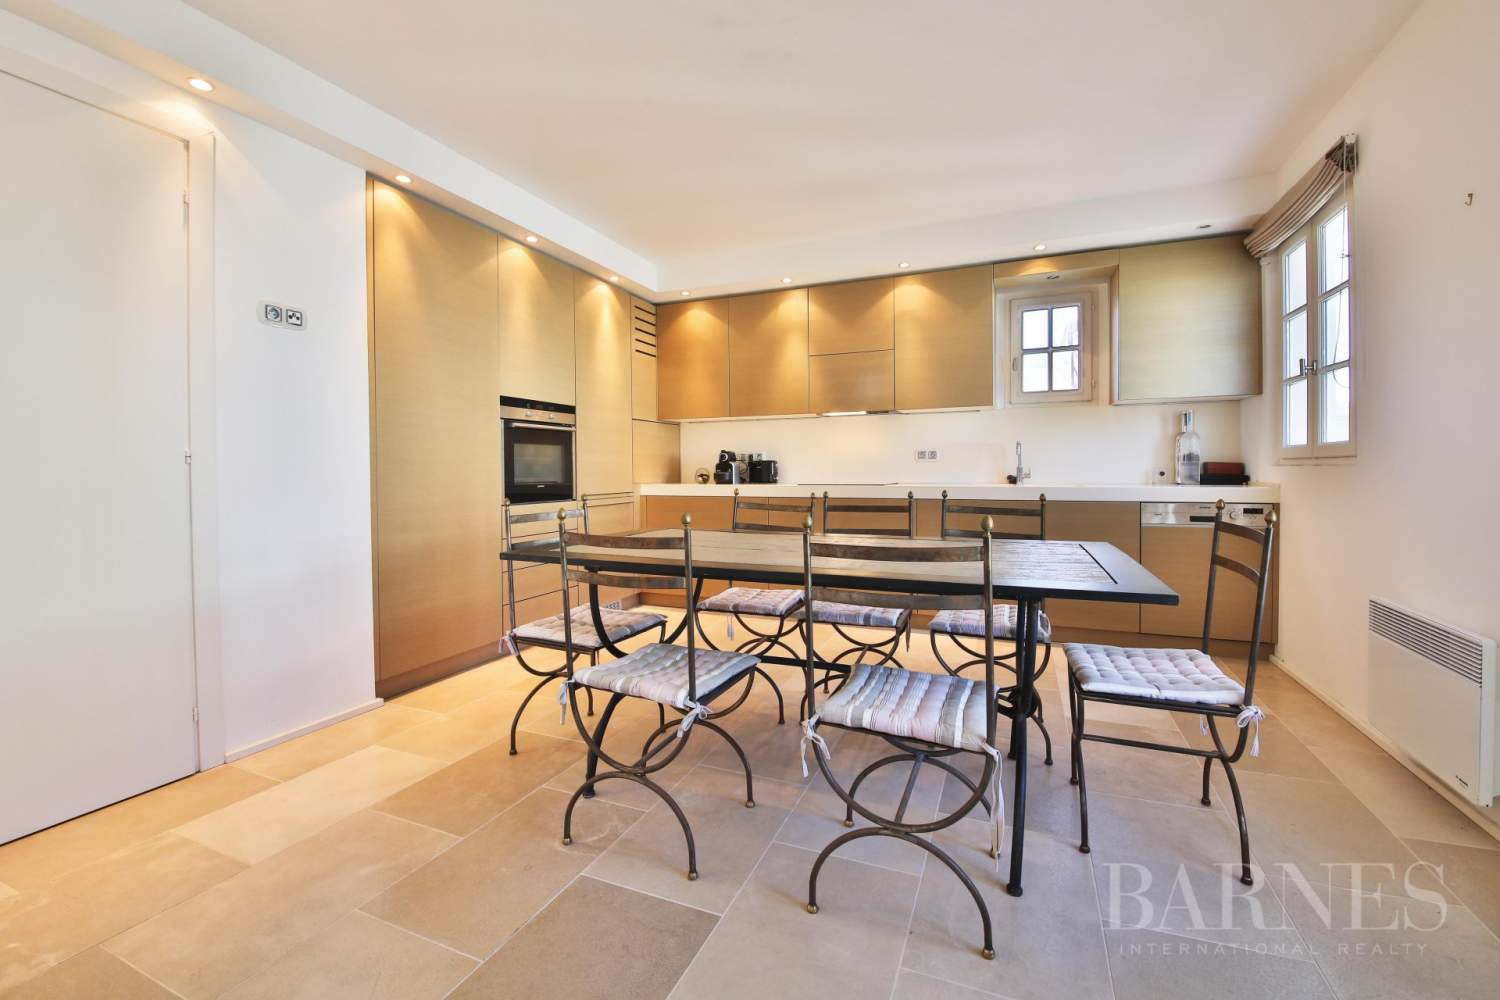 SAINT-TROPEZ - Modern apartment in the heart of village picture 3